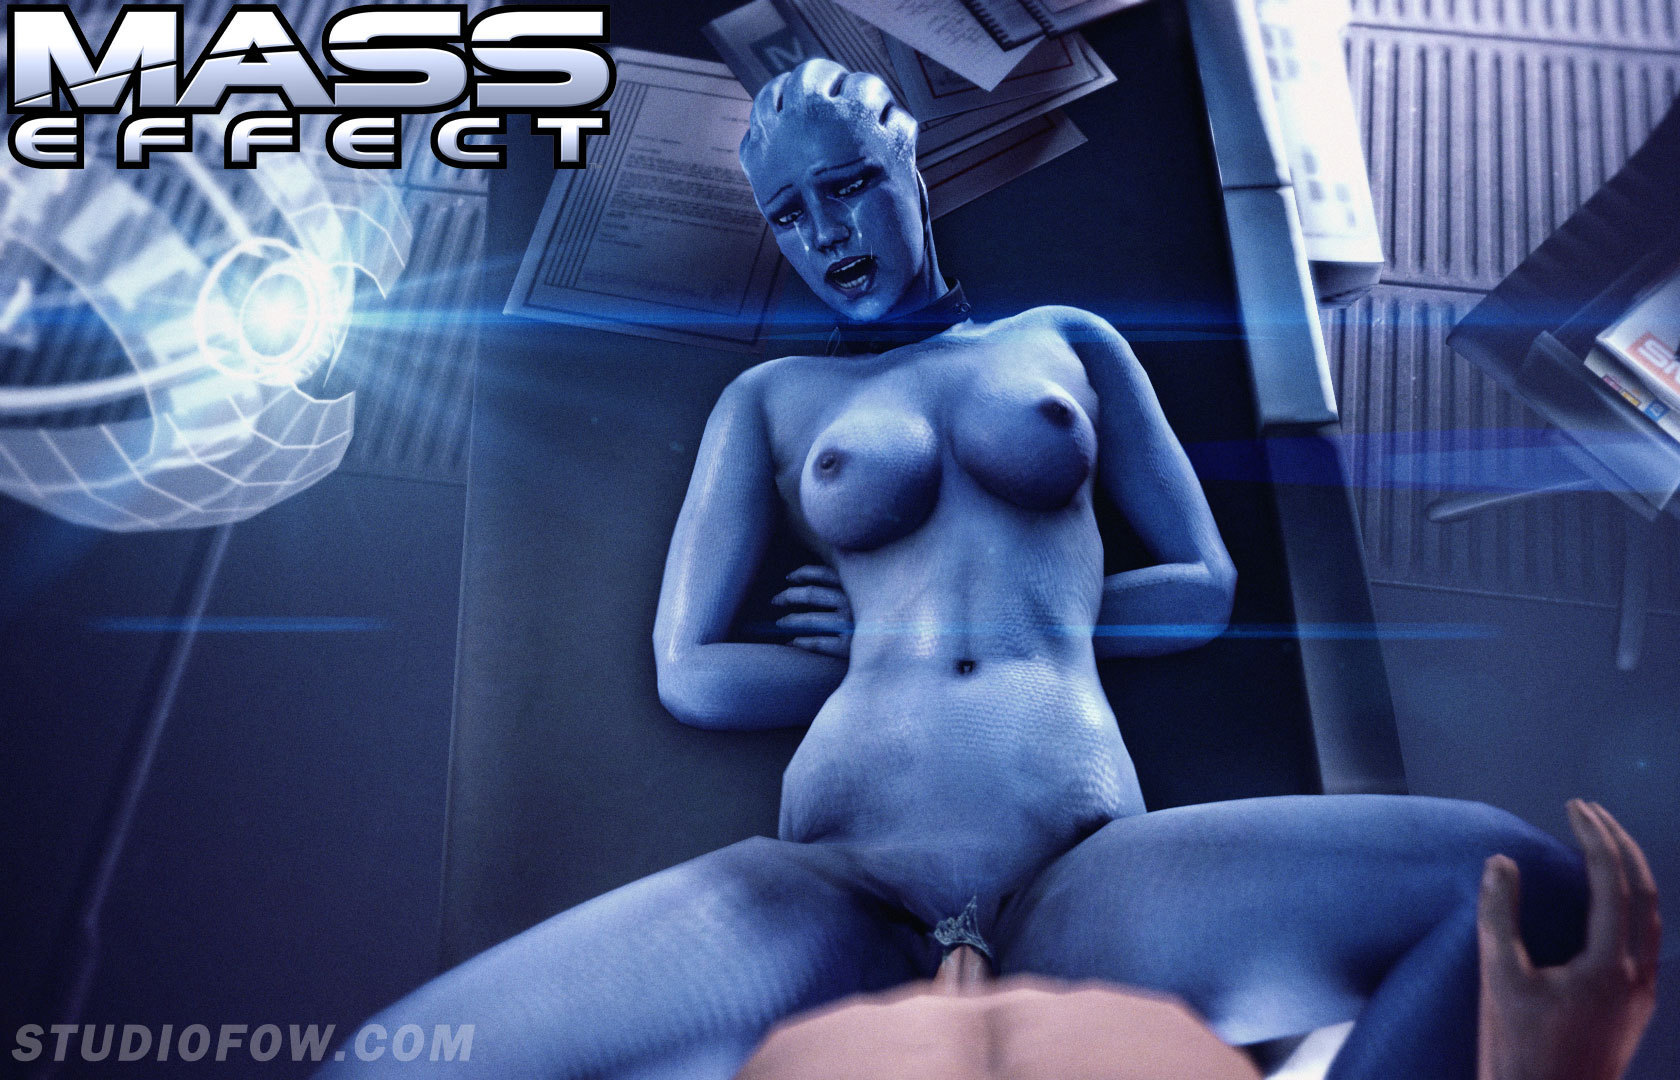 Mass effect 3d hentia naked sensual porn star